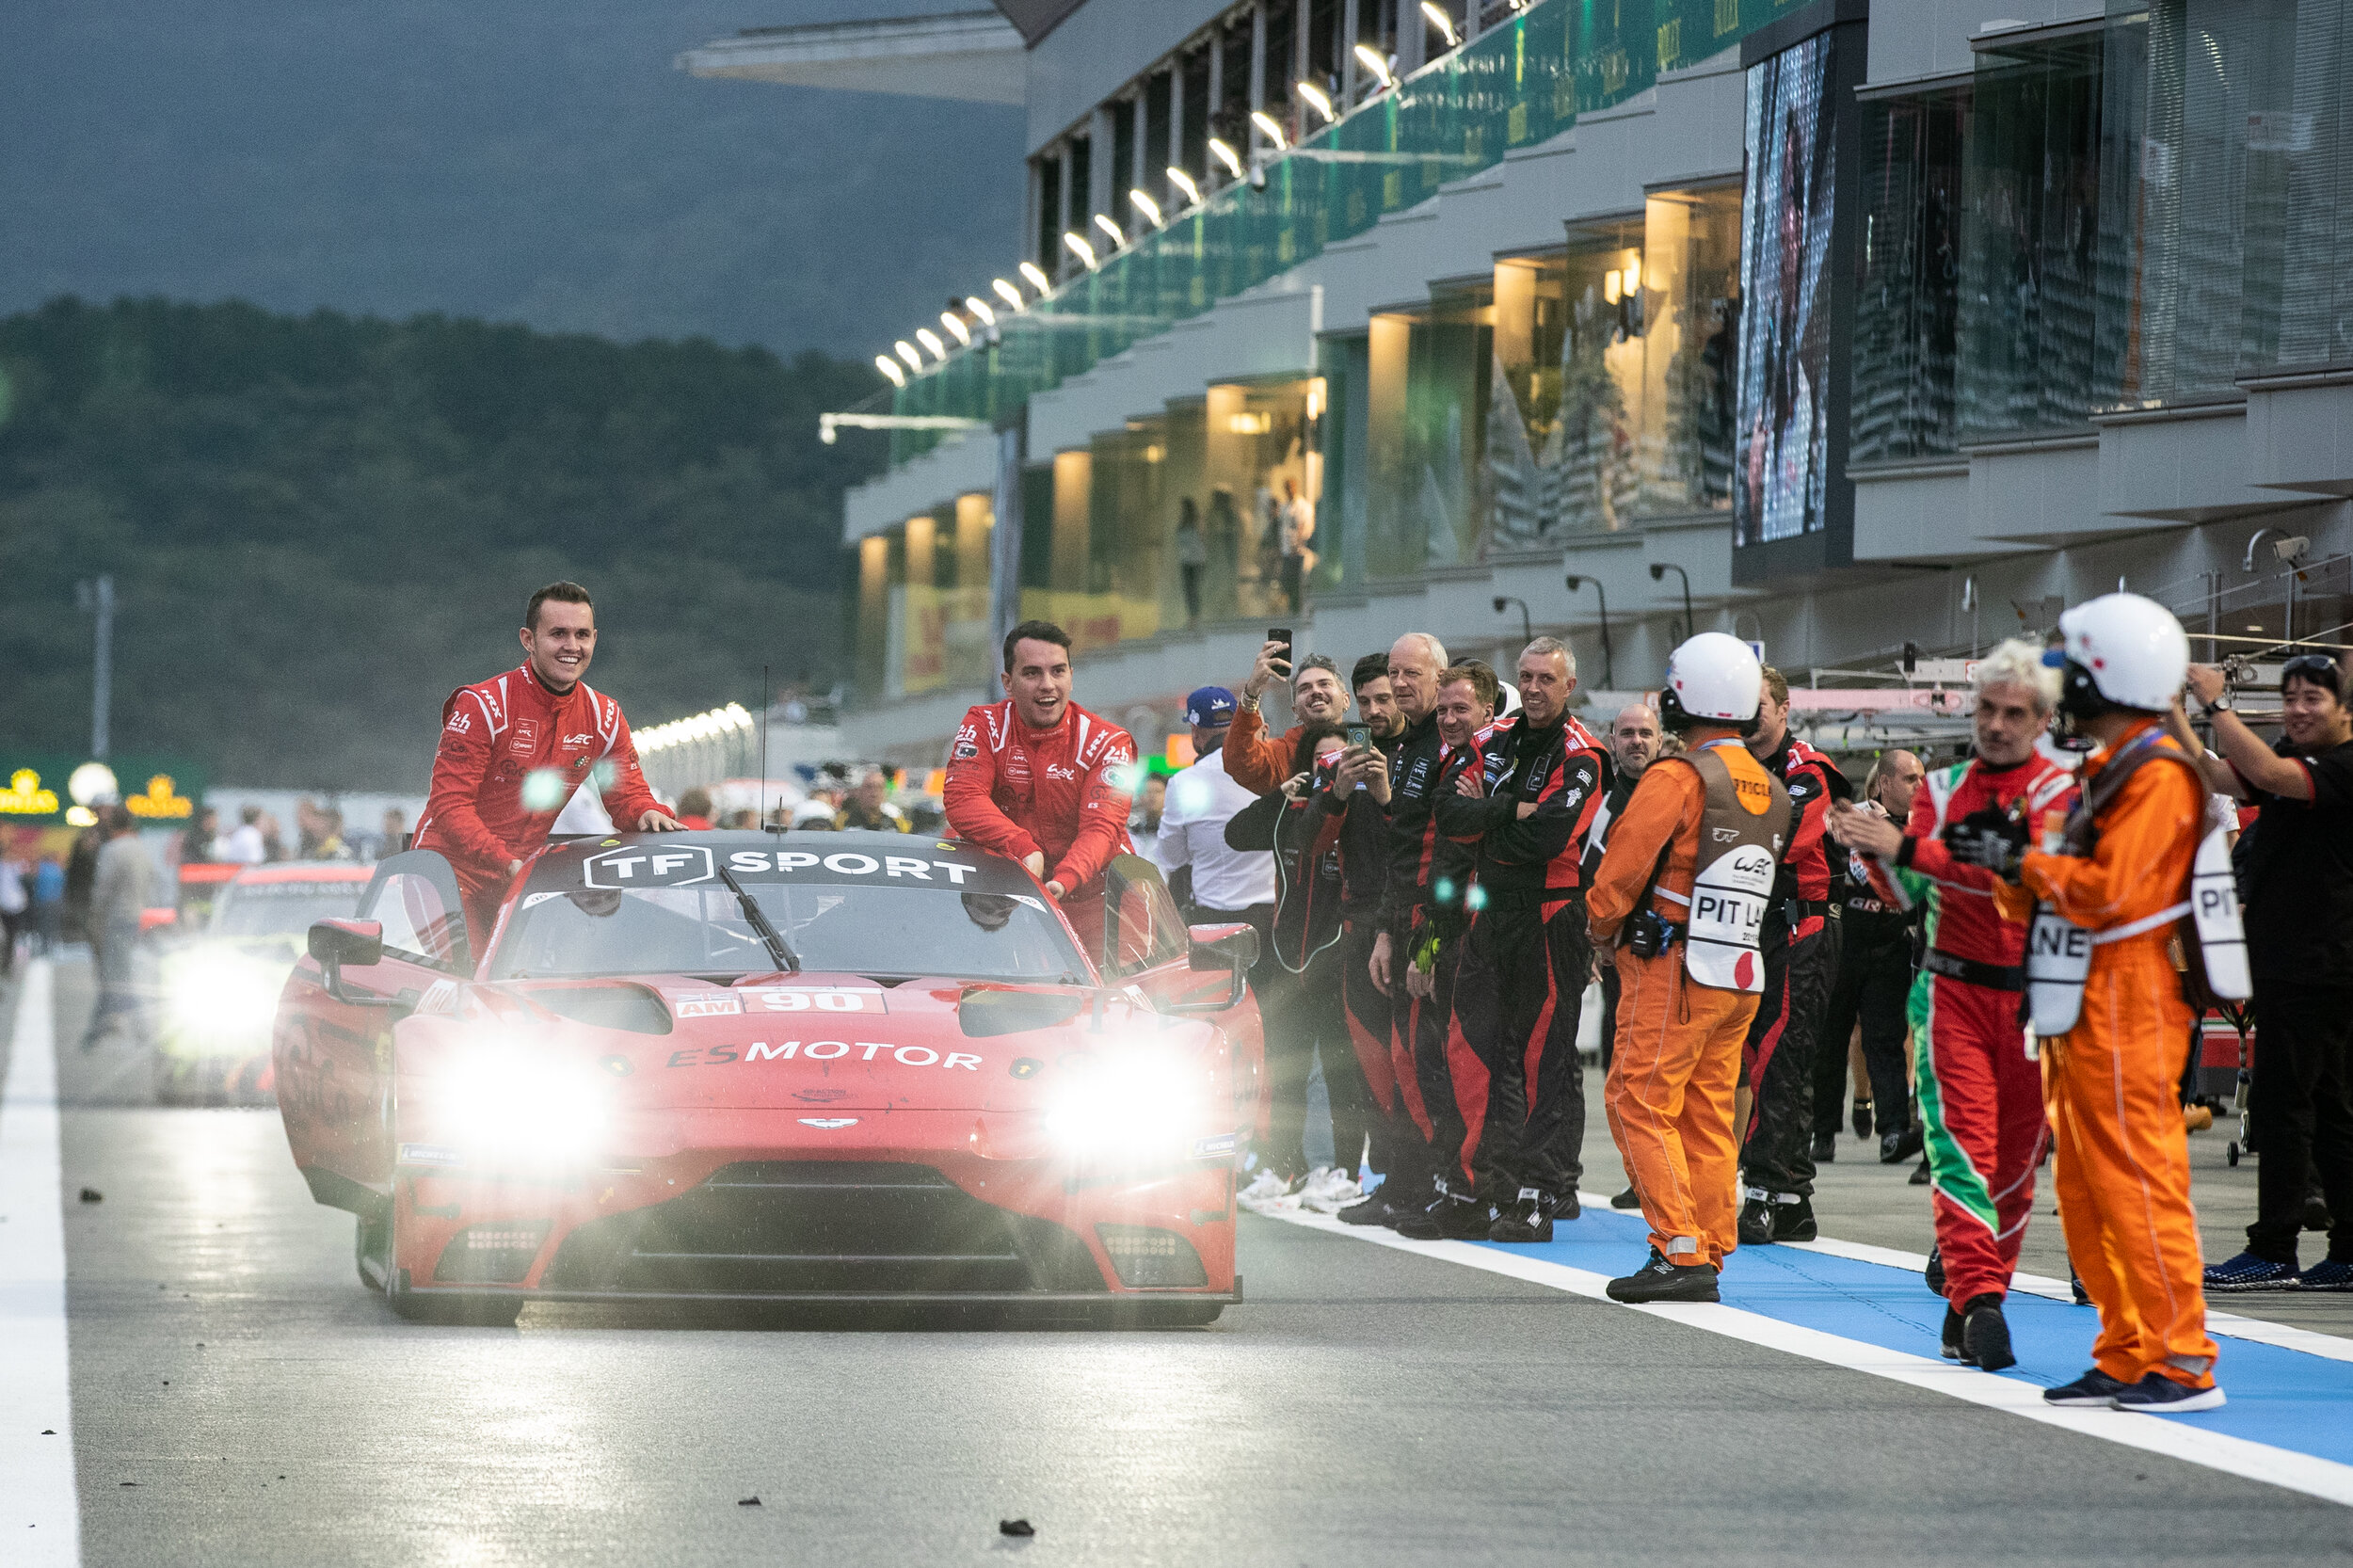 Latest Race Reports - Coverage of every race, including WEC and Blancpain.